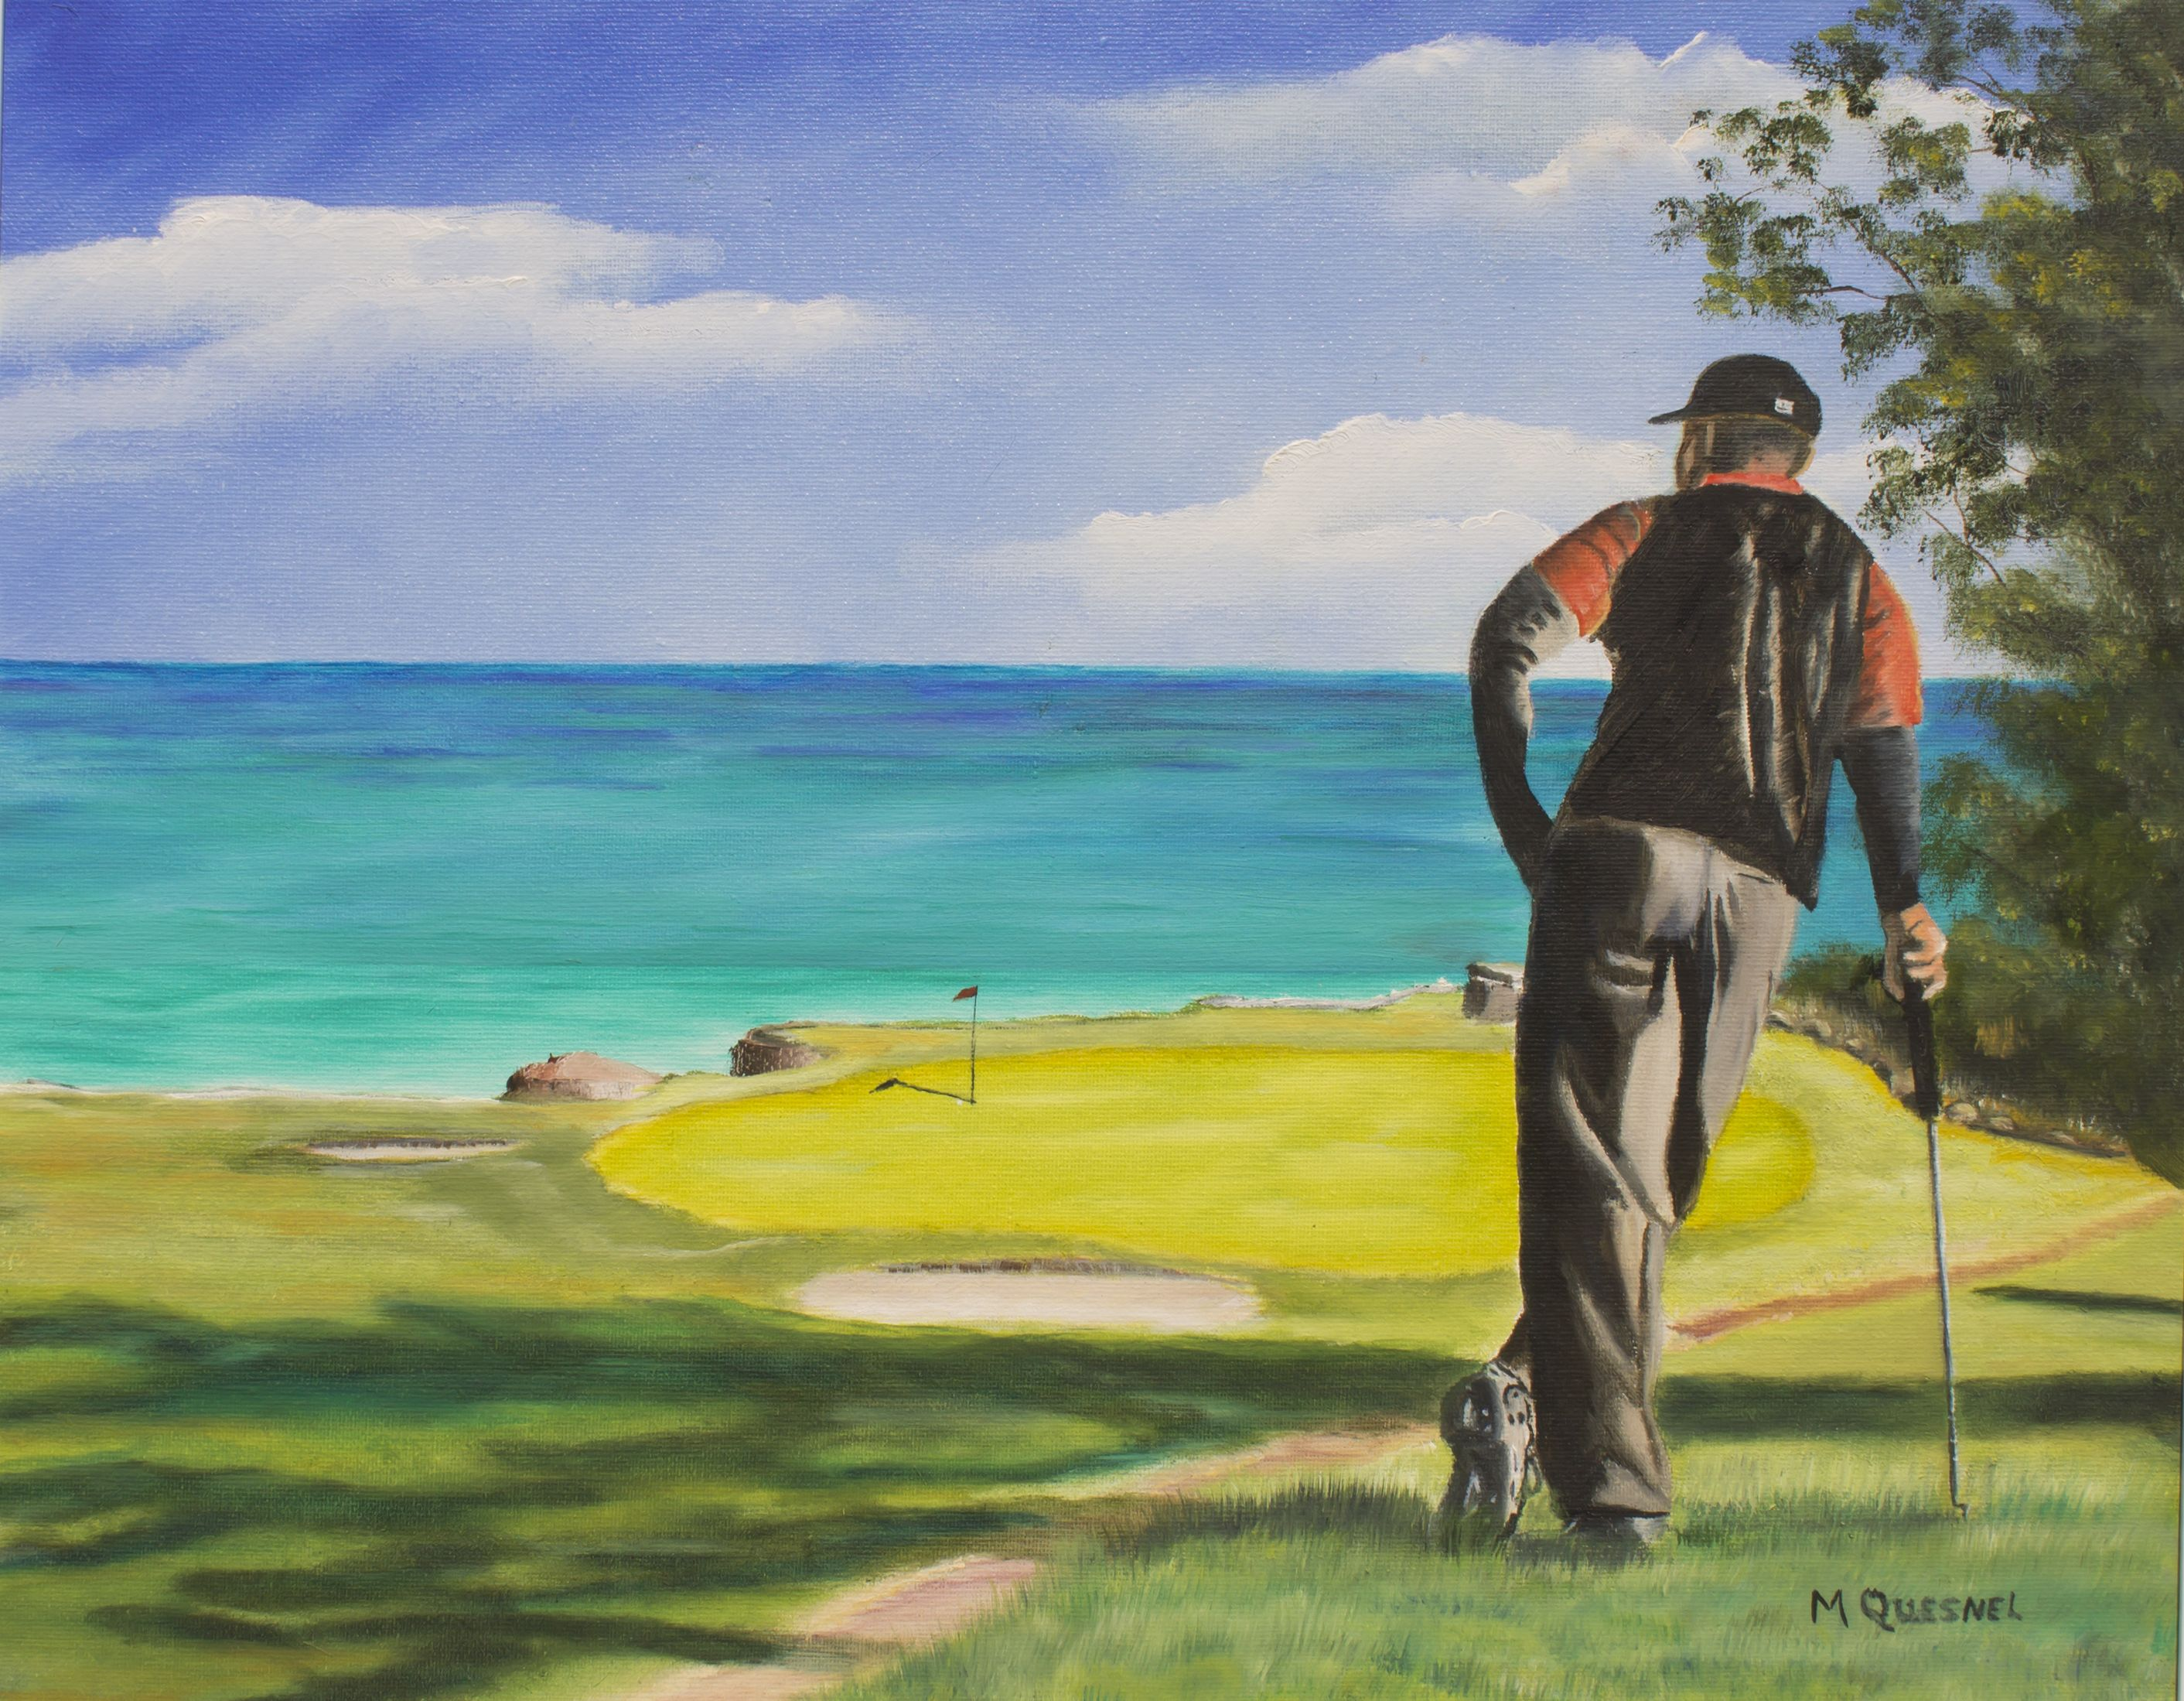 """Tiger Woods painting, """"Another Birdie"""" Price $4,500.00 This original golfing scene oil painting of a Famous Golfer was presented at an amazing show: Focus Art 2011 Juried Art Show, in Cornwall, Ontario. The result of this 7th Annual Juried Art Exhibition was 2nd Place: in the Oil Paintings category. This work signed by Marcel Quesnel"""